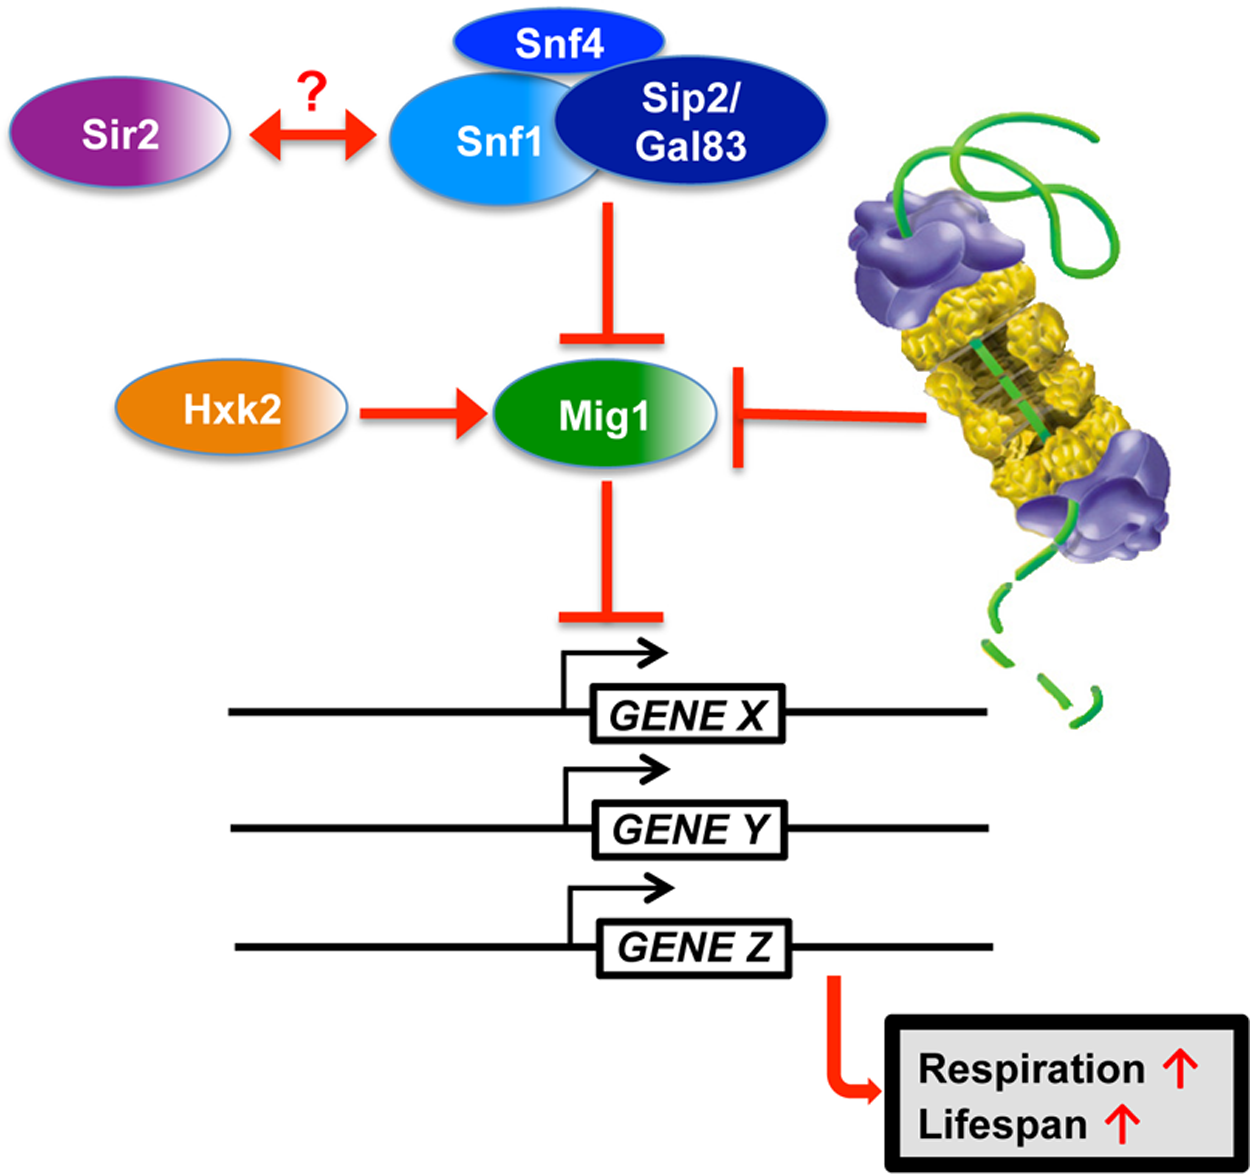 Model for Mig1 regulation by Snf1, Hxk2, the proteasome and Sir2.